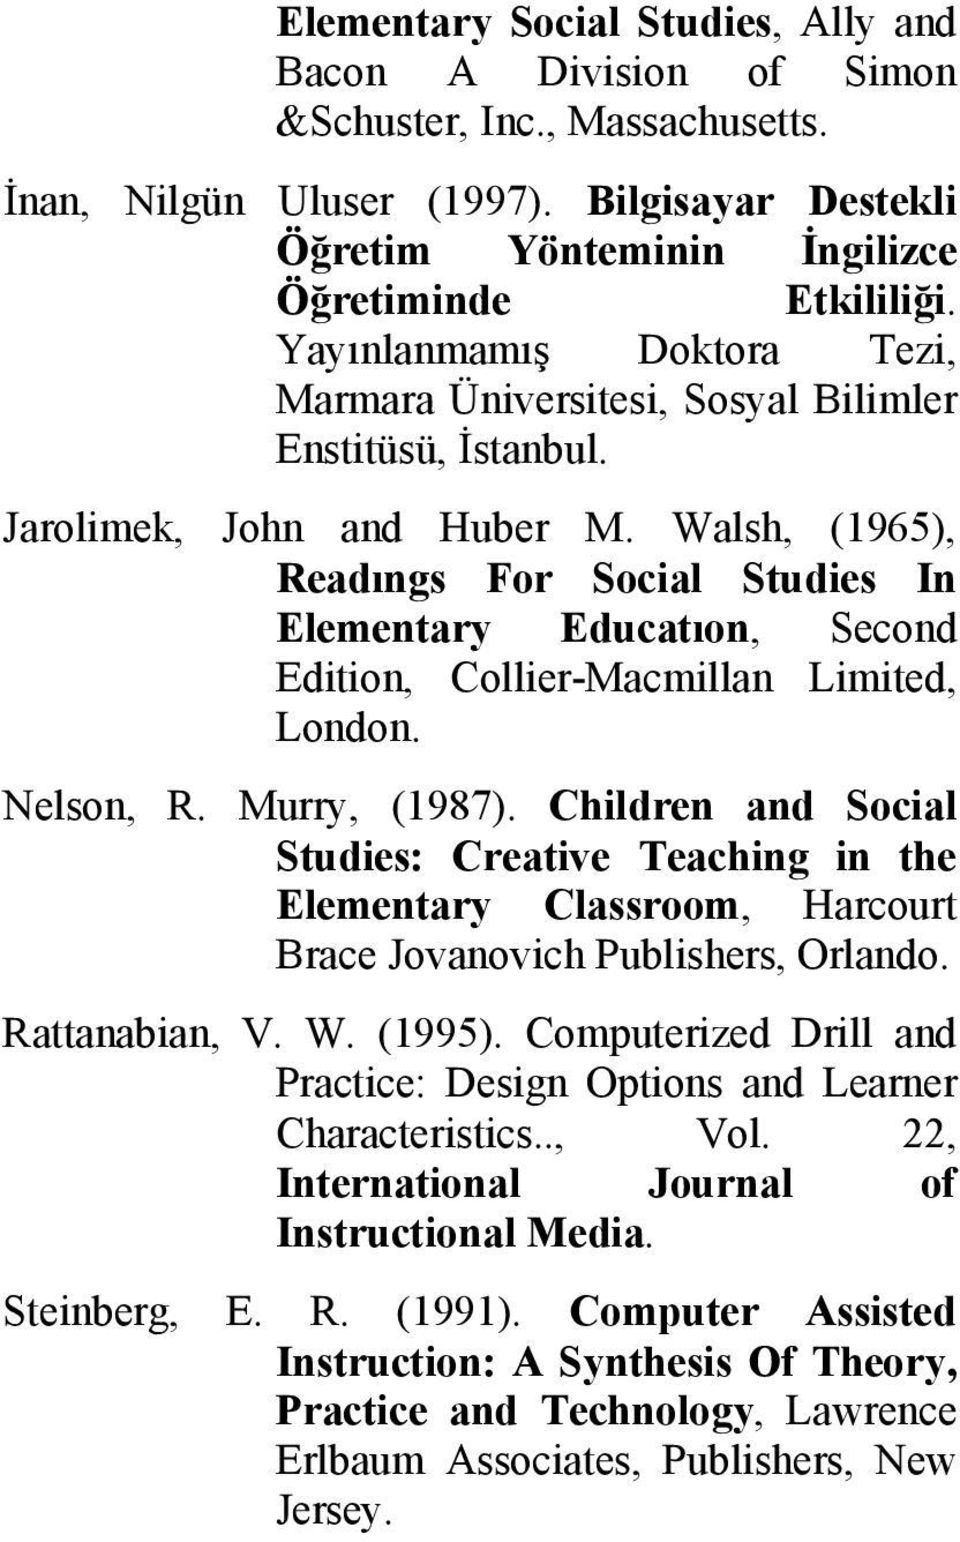 Walsh, (1965), Readıngs For Social Studies In Elementary Educatıon, Second Edition, Collier-Macmillan Limited, London. Nelson, R. Murry, (1987).